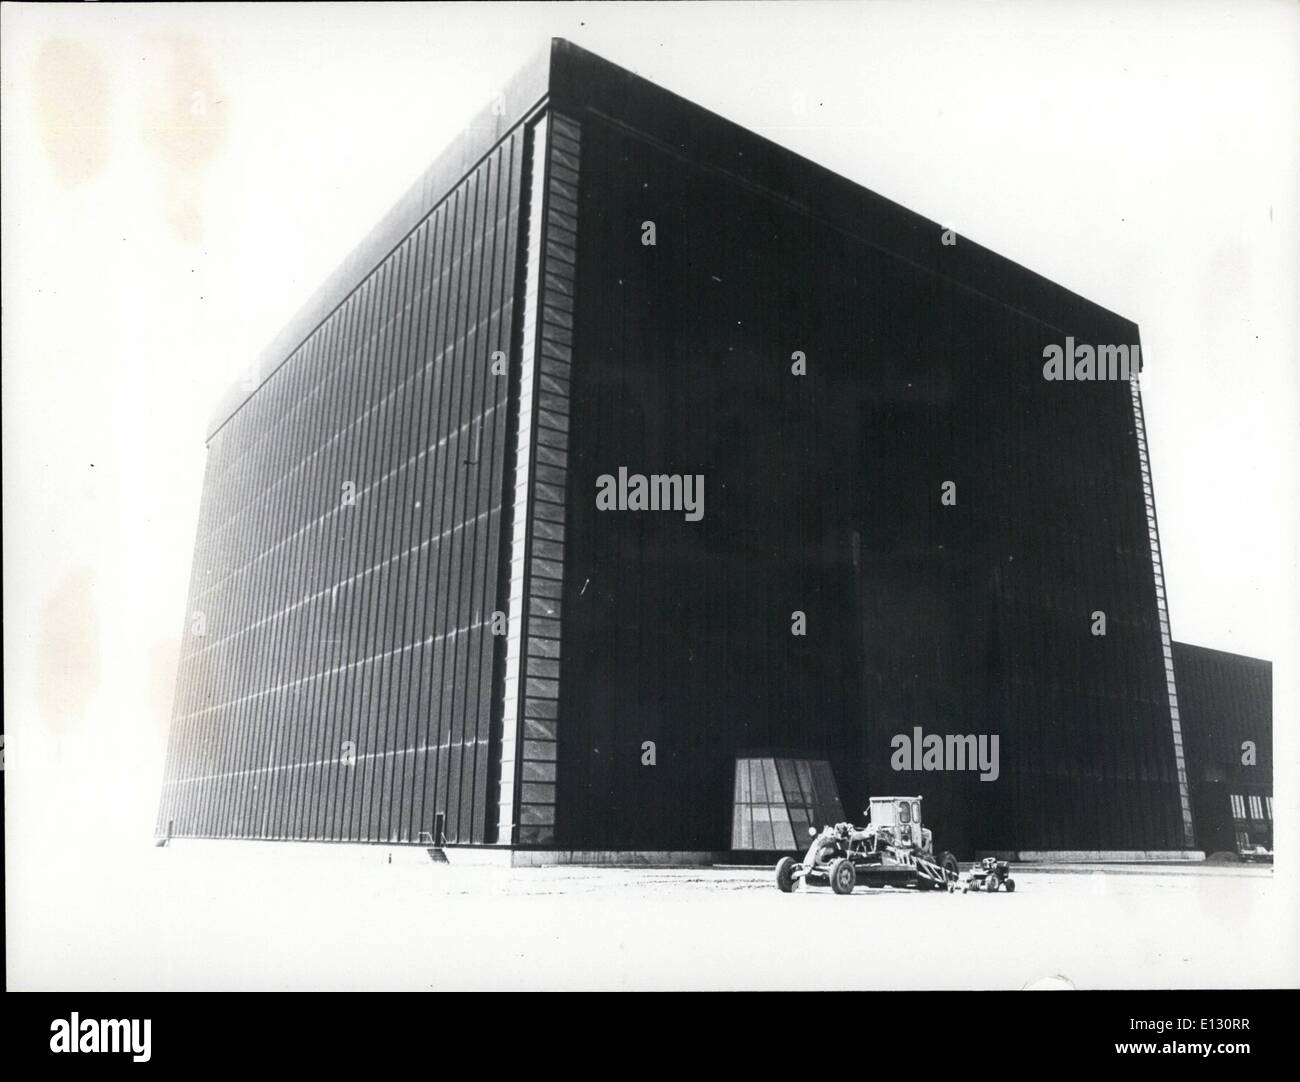 Feb. 26, 2012 - This immense black cube houses the high-voltage laboratory. The main test hall measures approximately 250 ft by - Stock Image